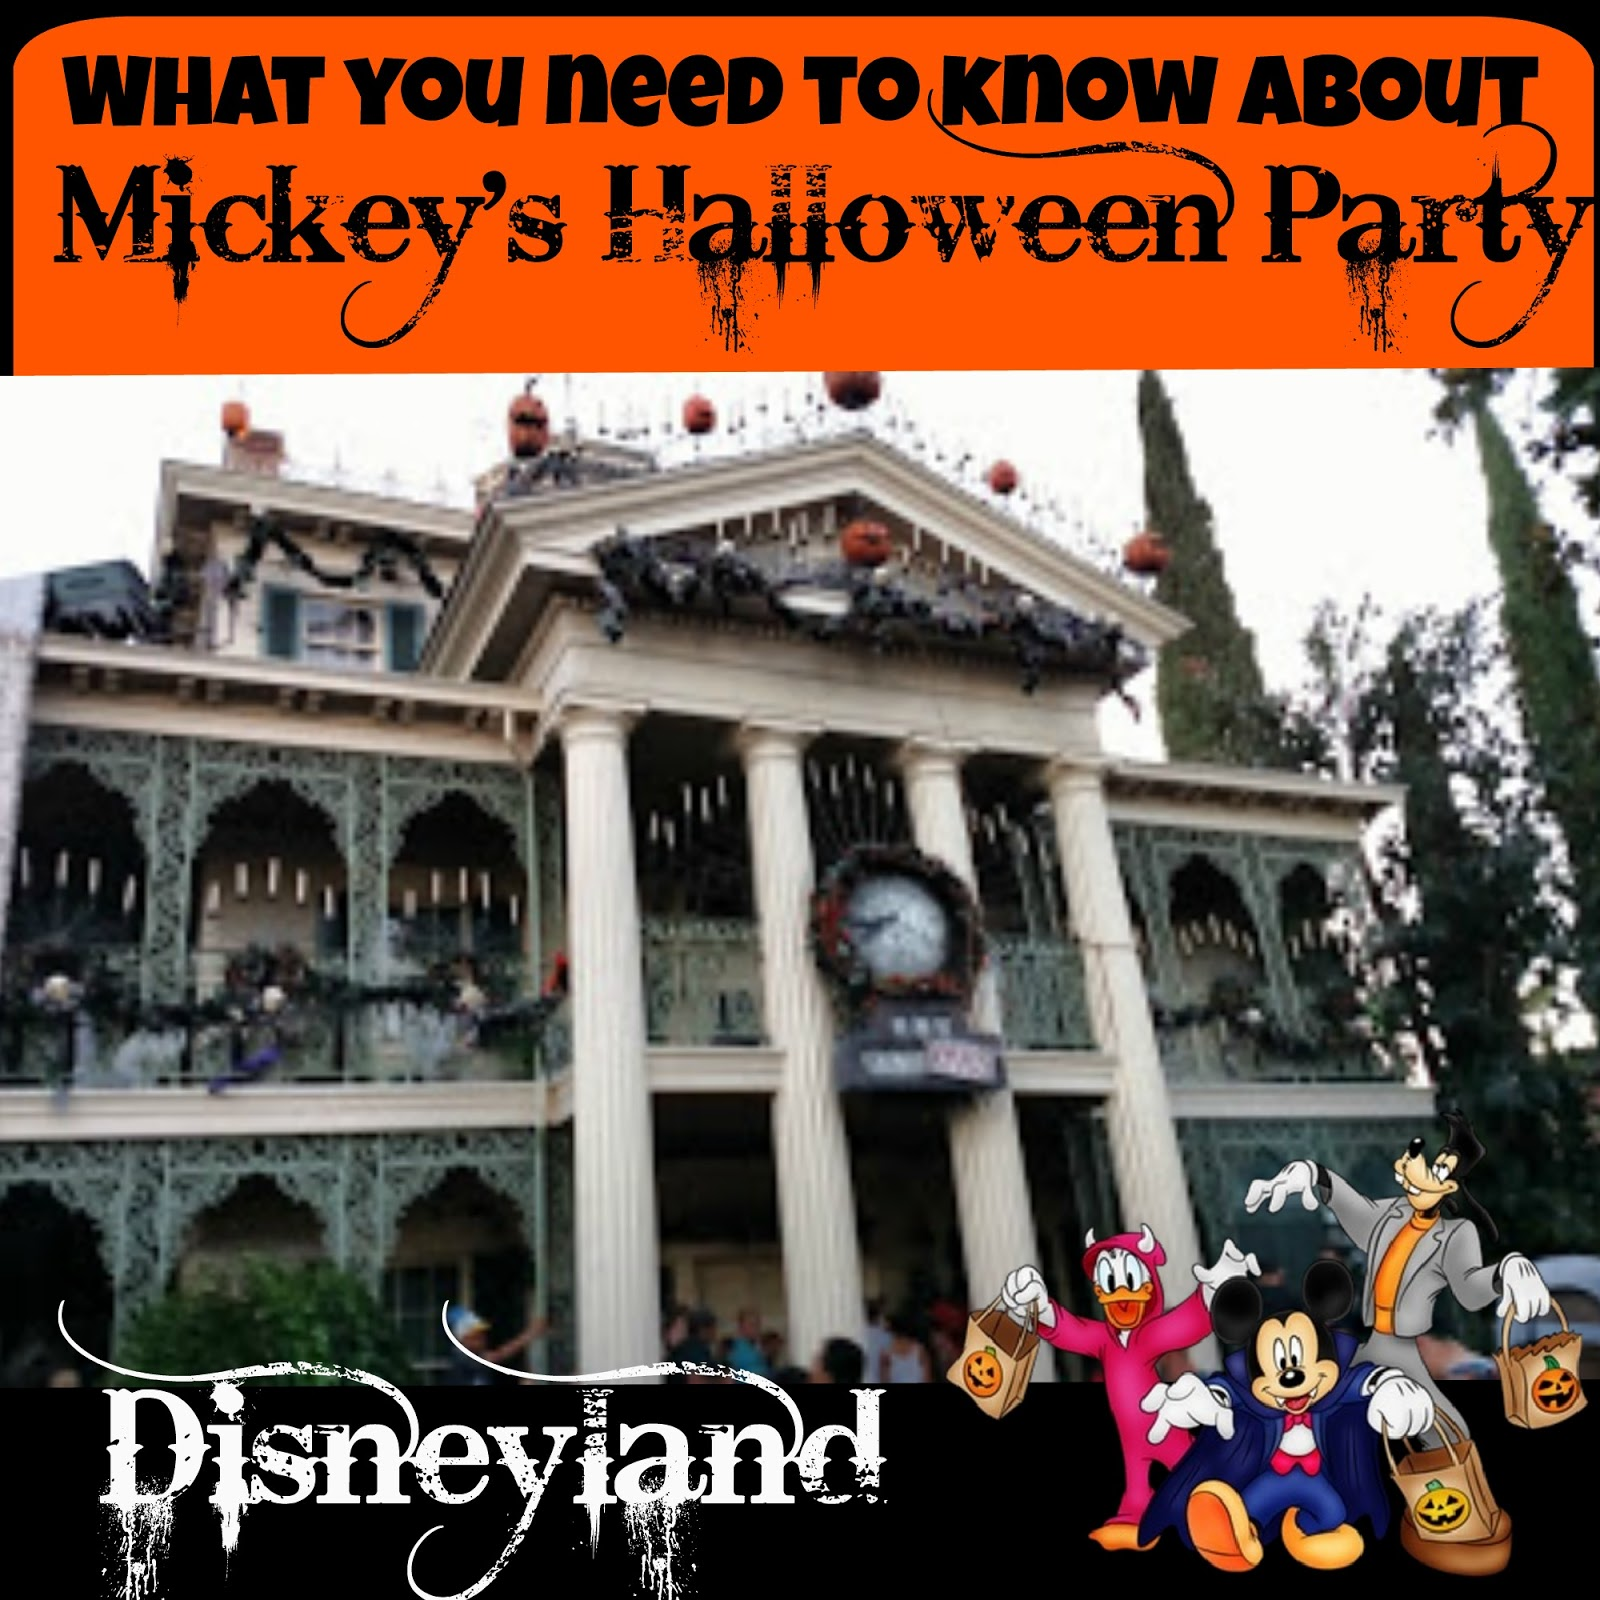 What you need to know about Mickey's Halloween Party in Disneyland ...